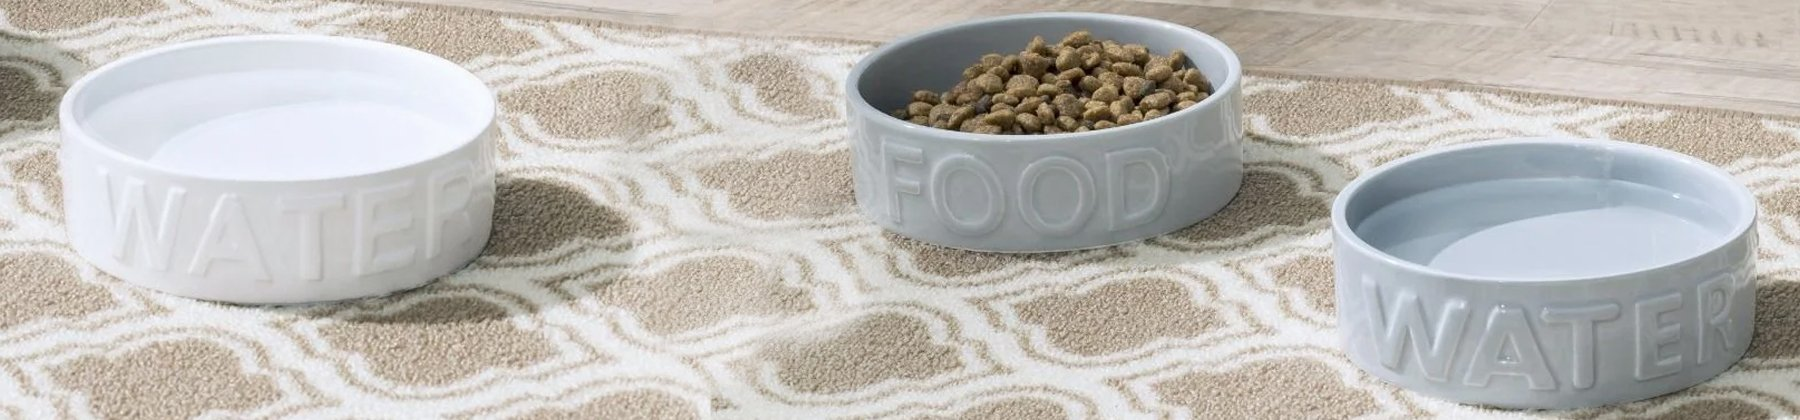 Photo of Park Life Designs pet food and water bowls on a living room carpet.